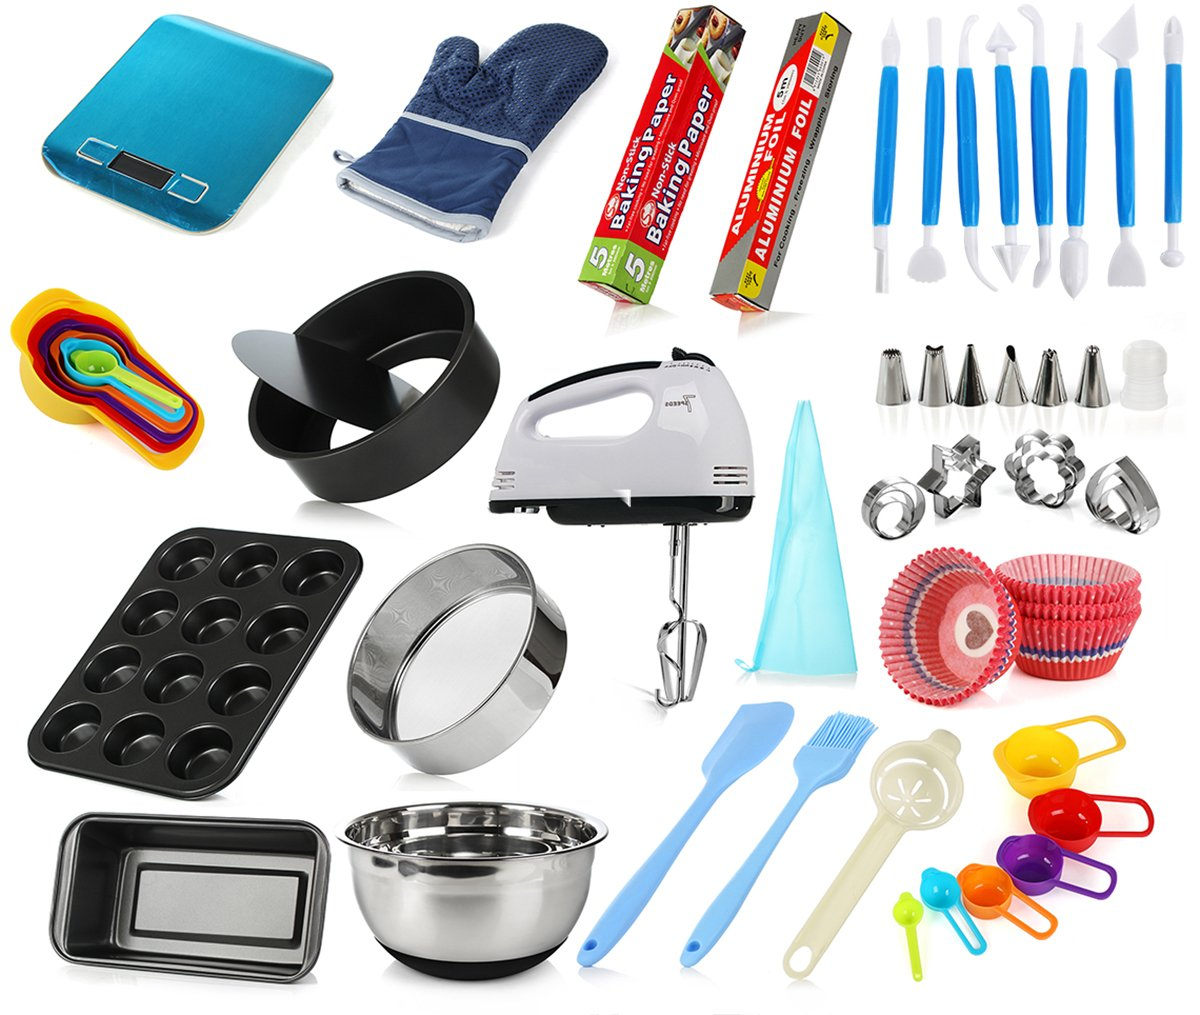 DeElf Complete Cake Baking Set Tools for Teenagers and Adult Beginners Starting Kit - Ultimate Bakeware Set for Birthday, Thanksgiving and Christmas Gift